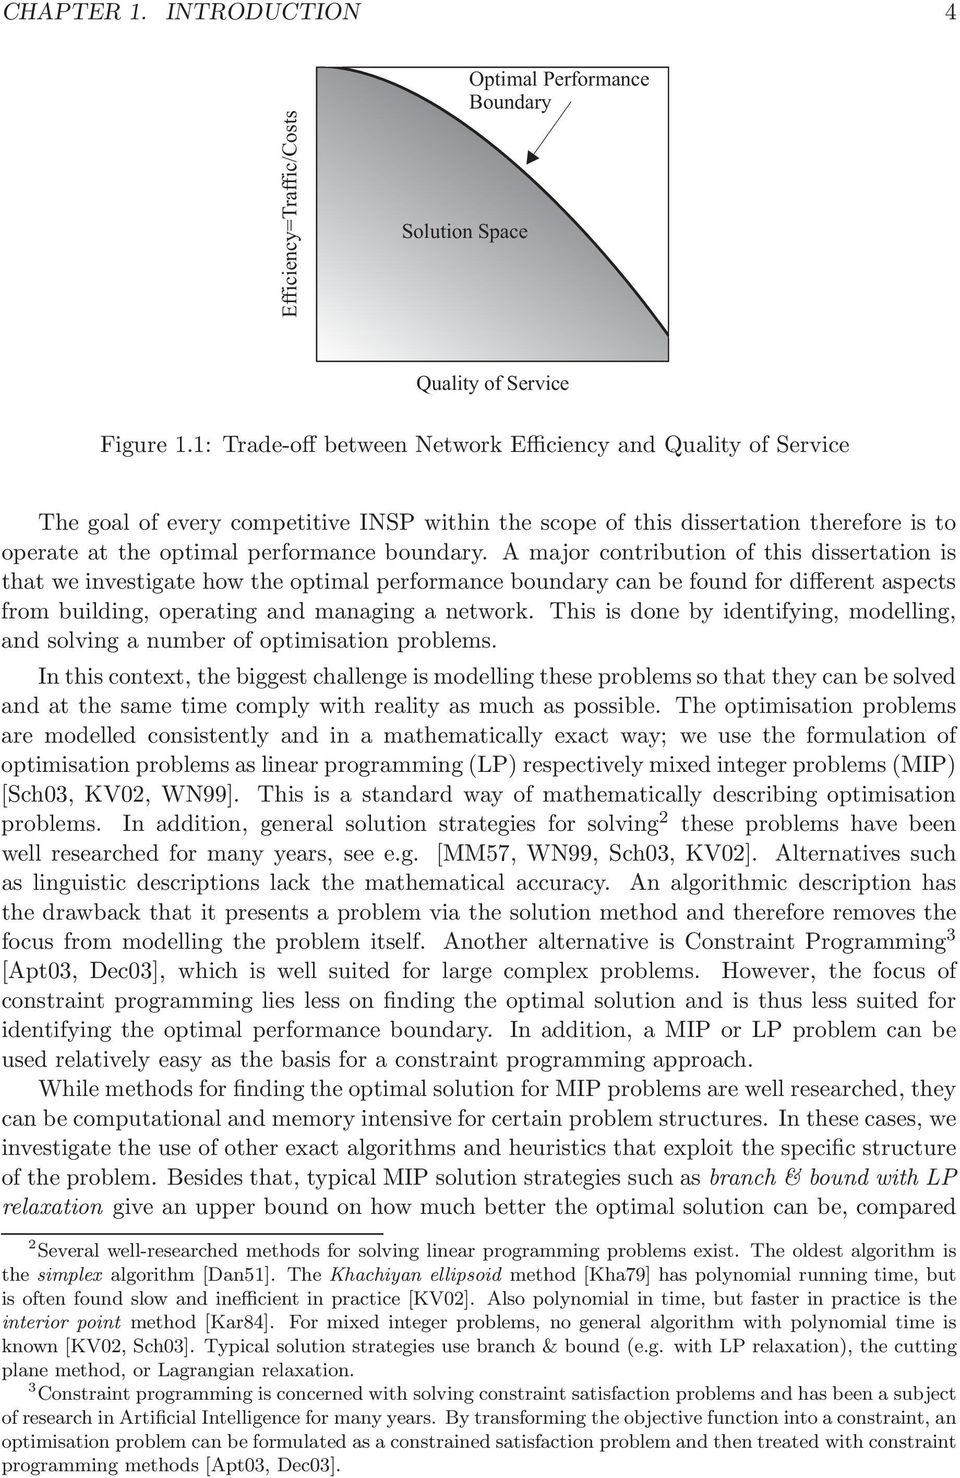 A major contribution of this dissertation is that we investigate how the optimal performance boundary can be found for different aspects from building, operating and managing a network.